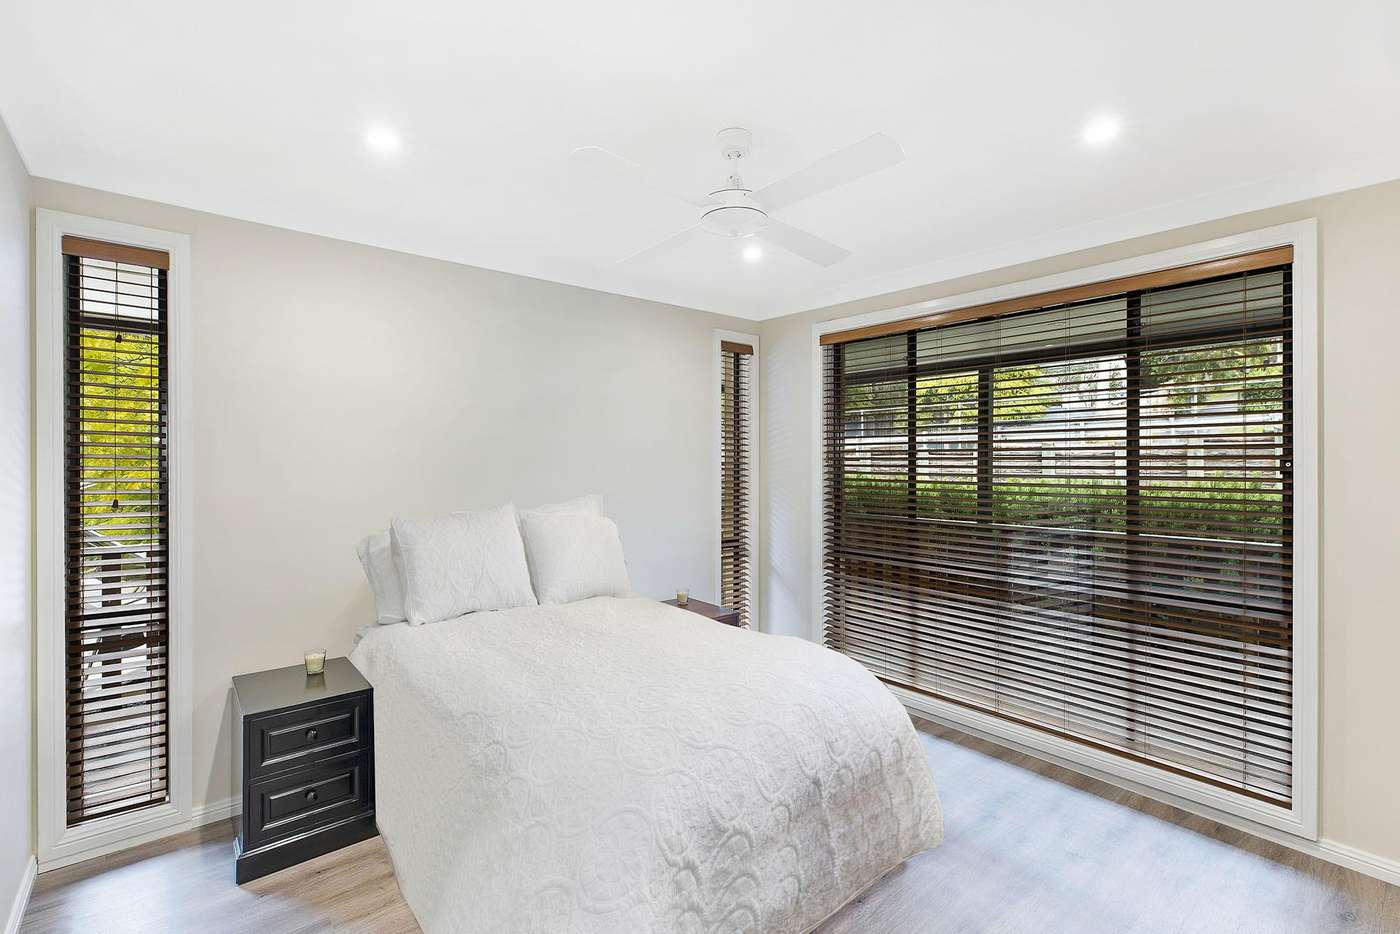 Seventh view of Homely house listing, 99 Rosella Road, Empire Bay NSW 2257